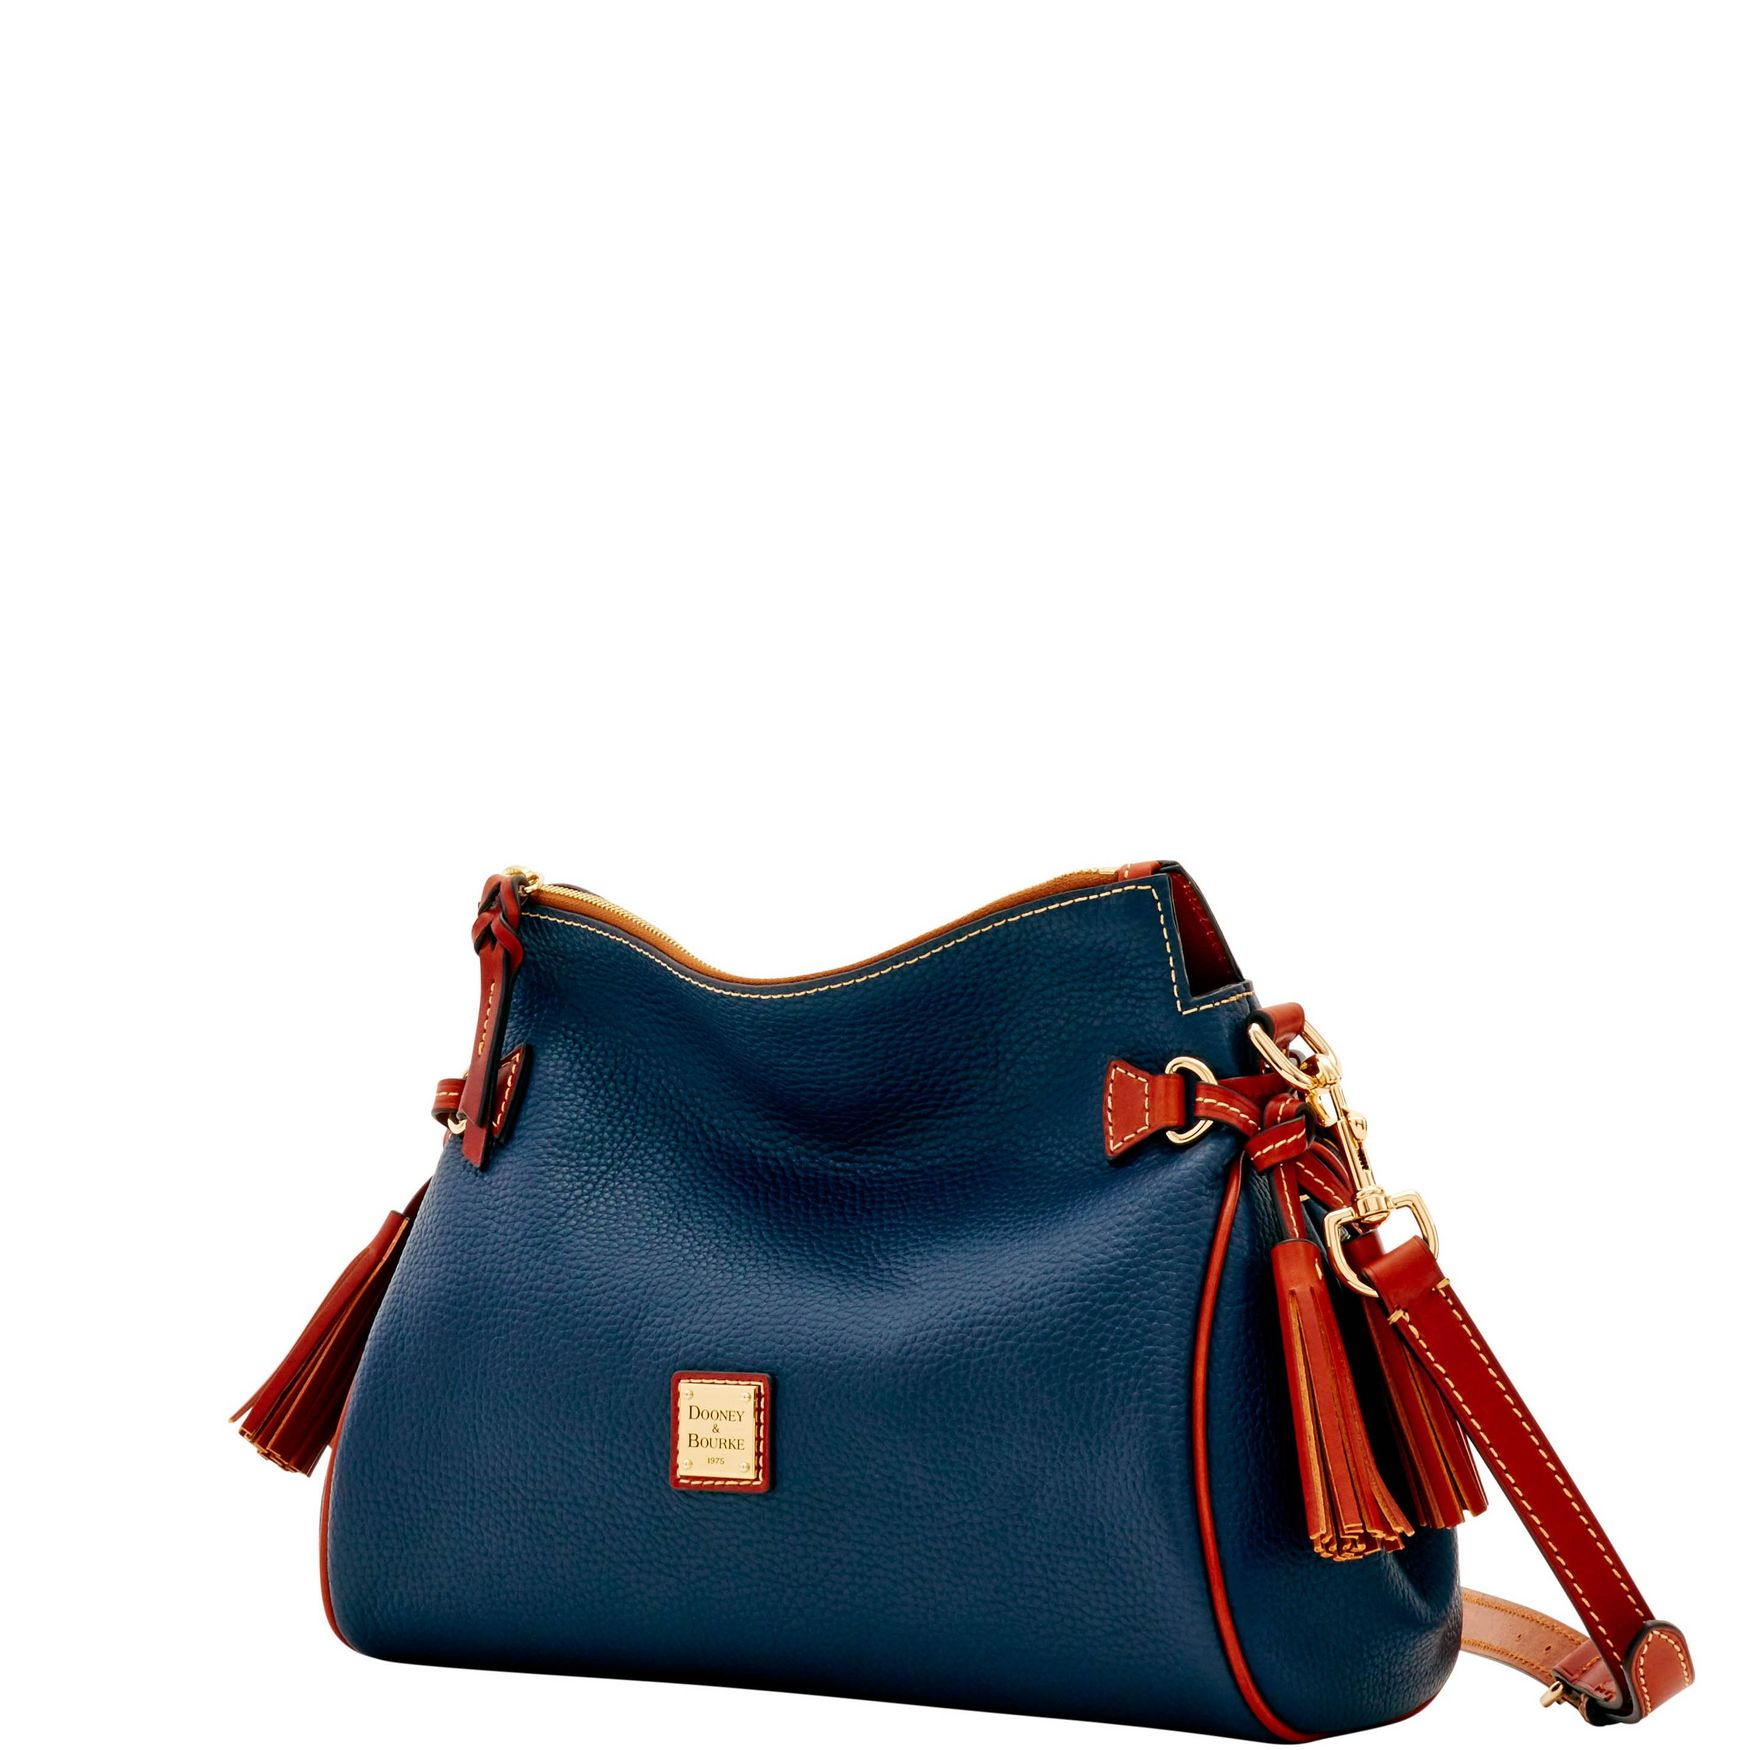 Dooney-amp-Bourke-Pebble-Grain-Medium-Zip-Crossbody-Shoulder-Bag thumbnail 24